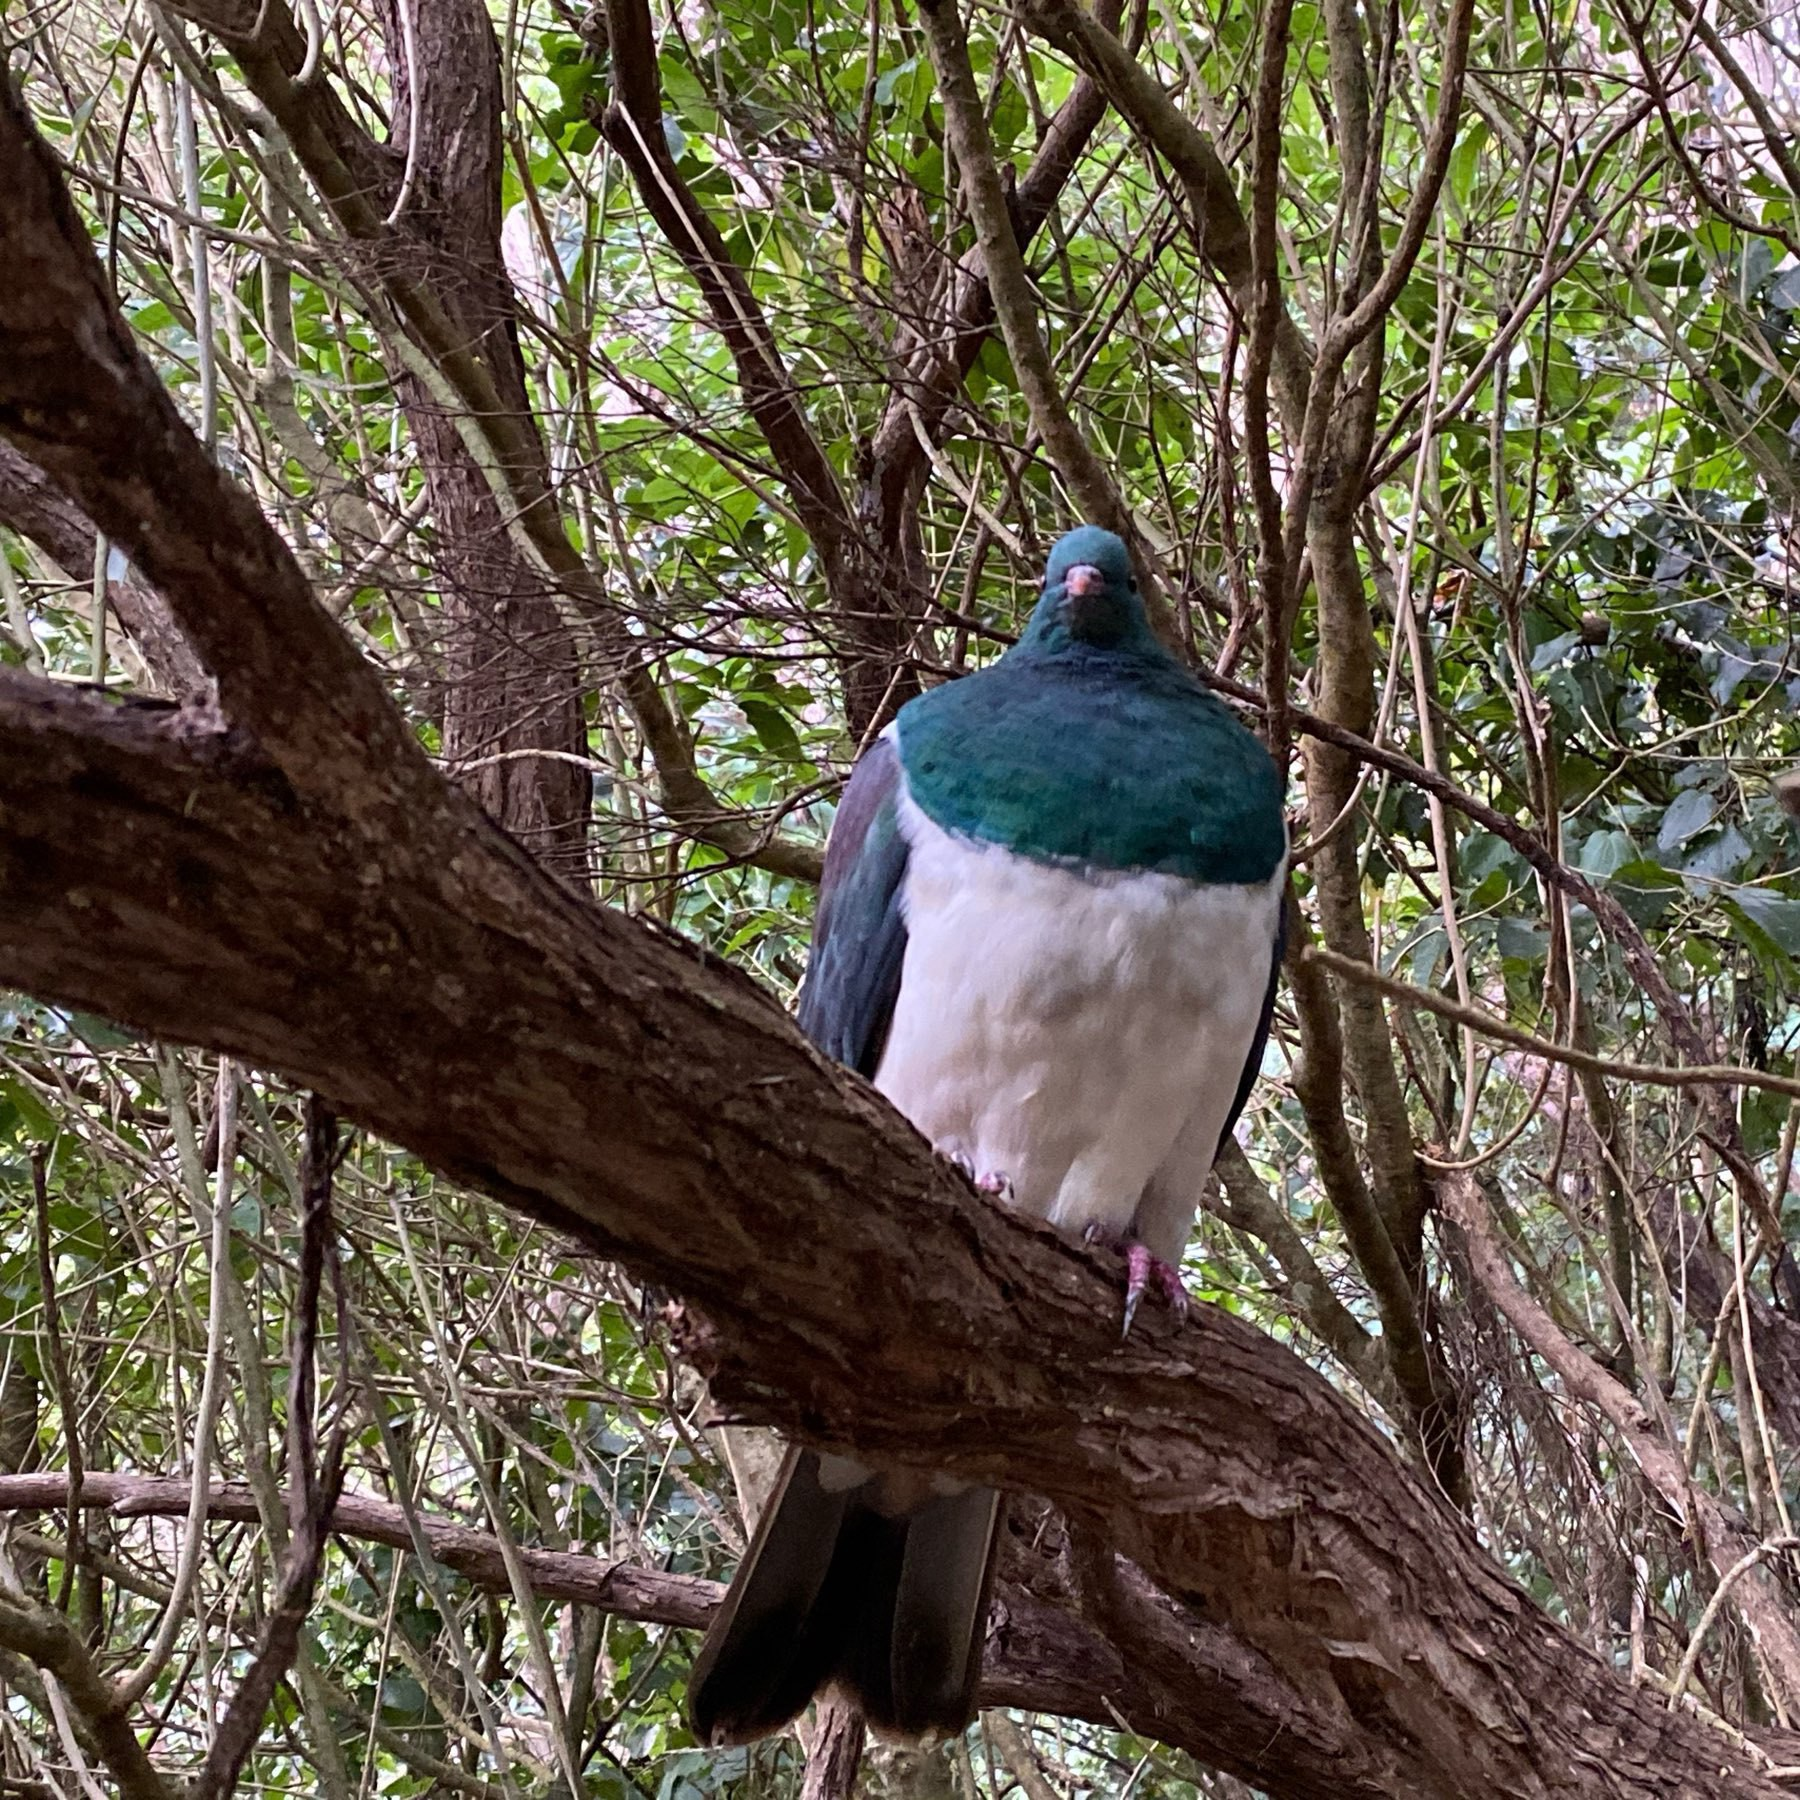 Large wood pigeon on a branch.